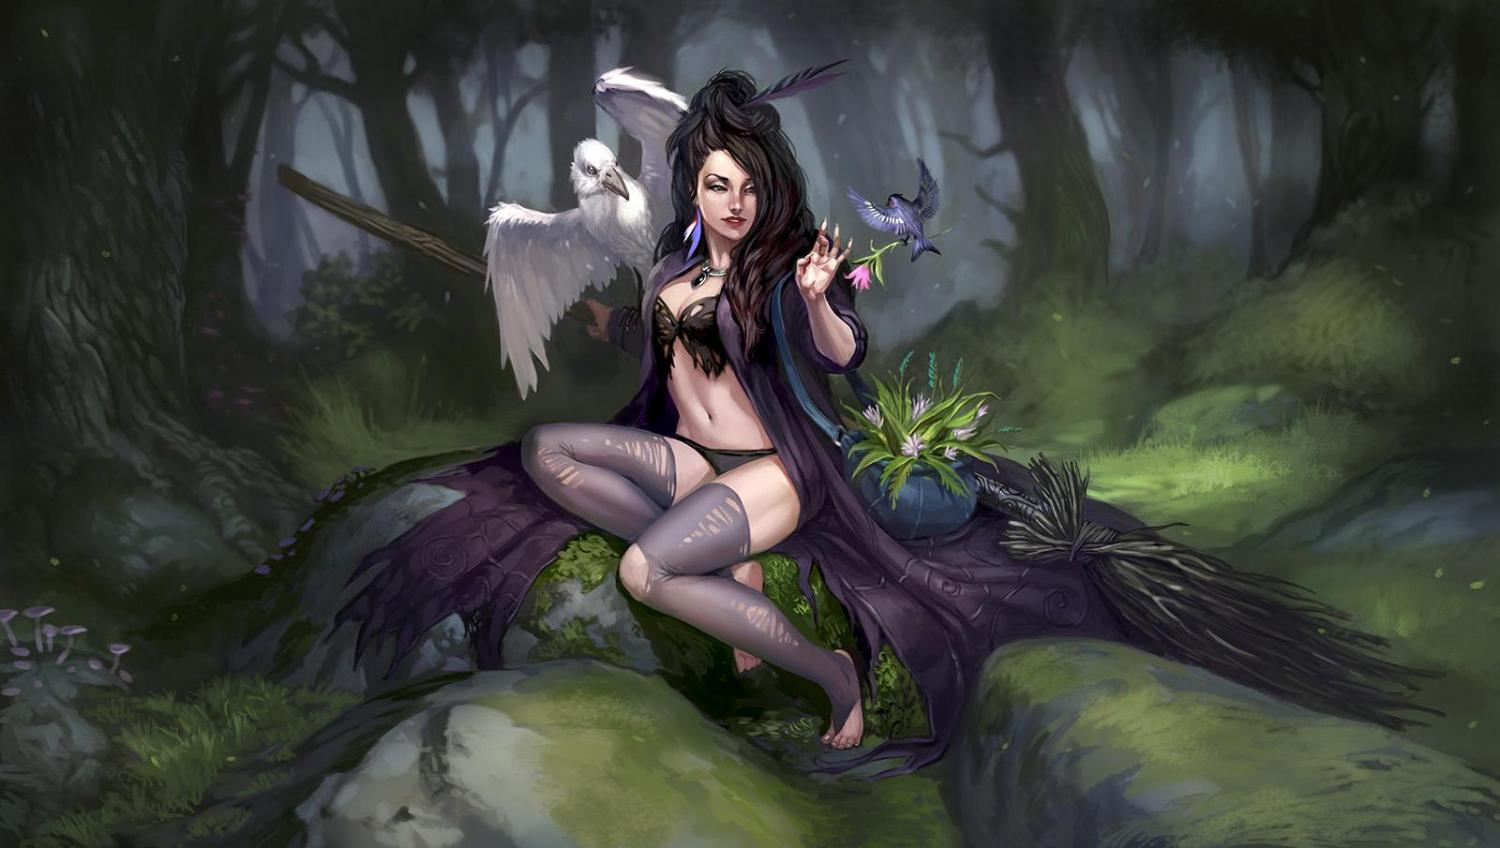 witch_forest_1600.jpg